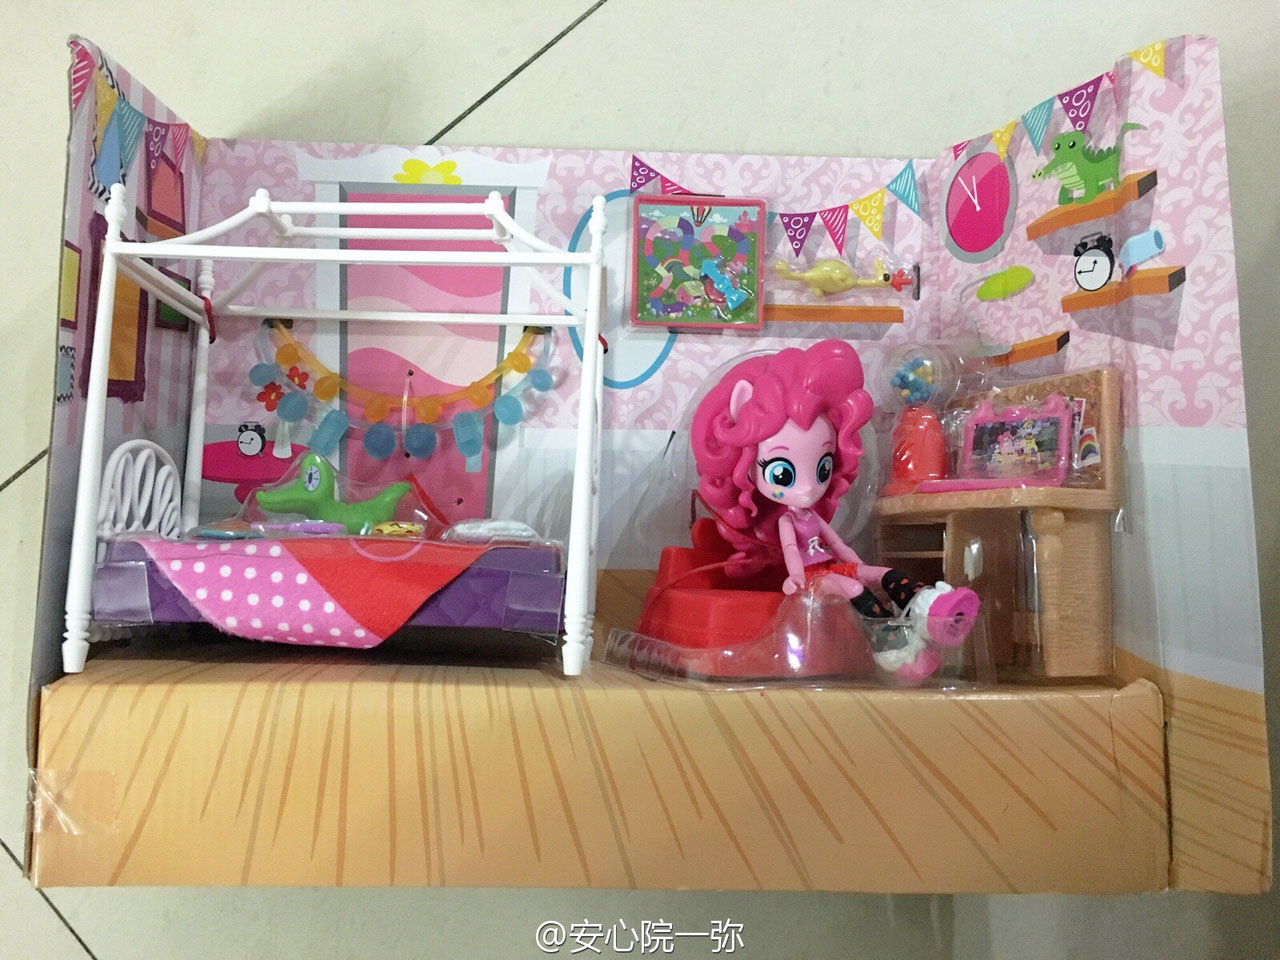 First Equestria Girls Mini Set Spotted First Equestria Girls Mini Set  Spotted